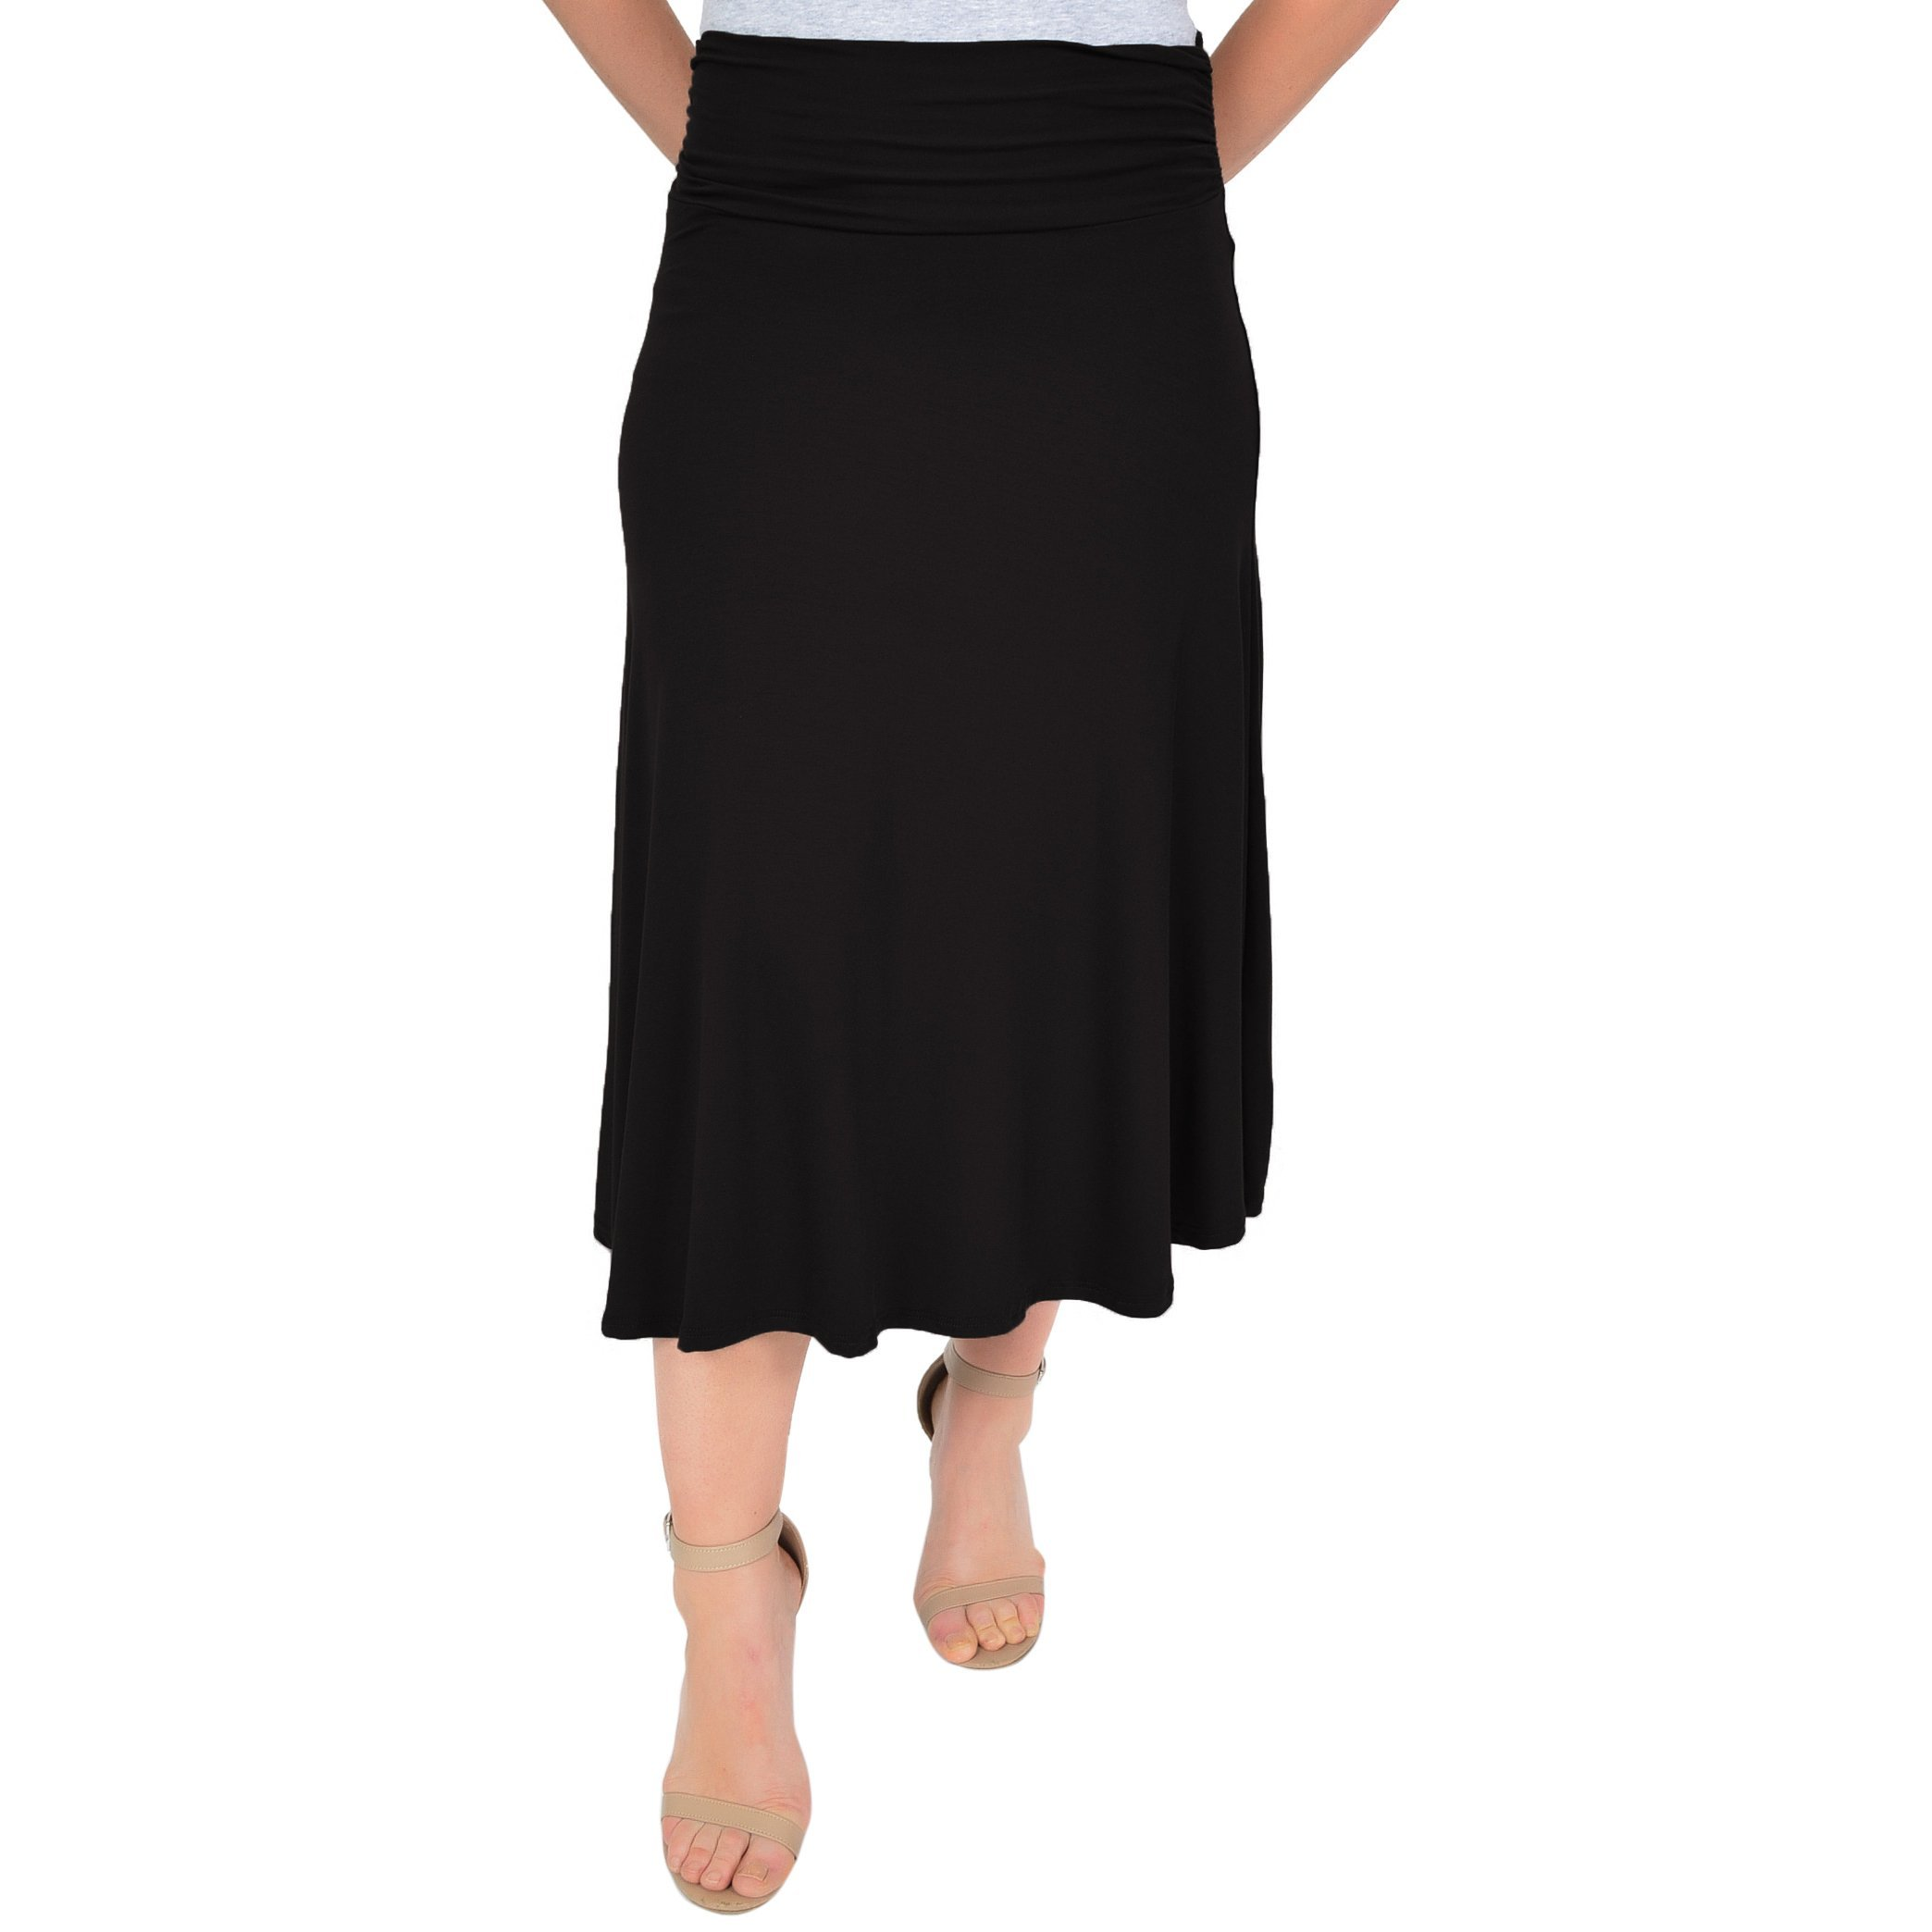 Stretch is Comfort Women's Mandy Midi Flowy Skirt Black 2X